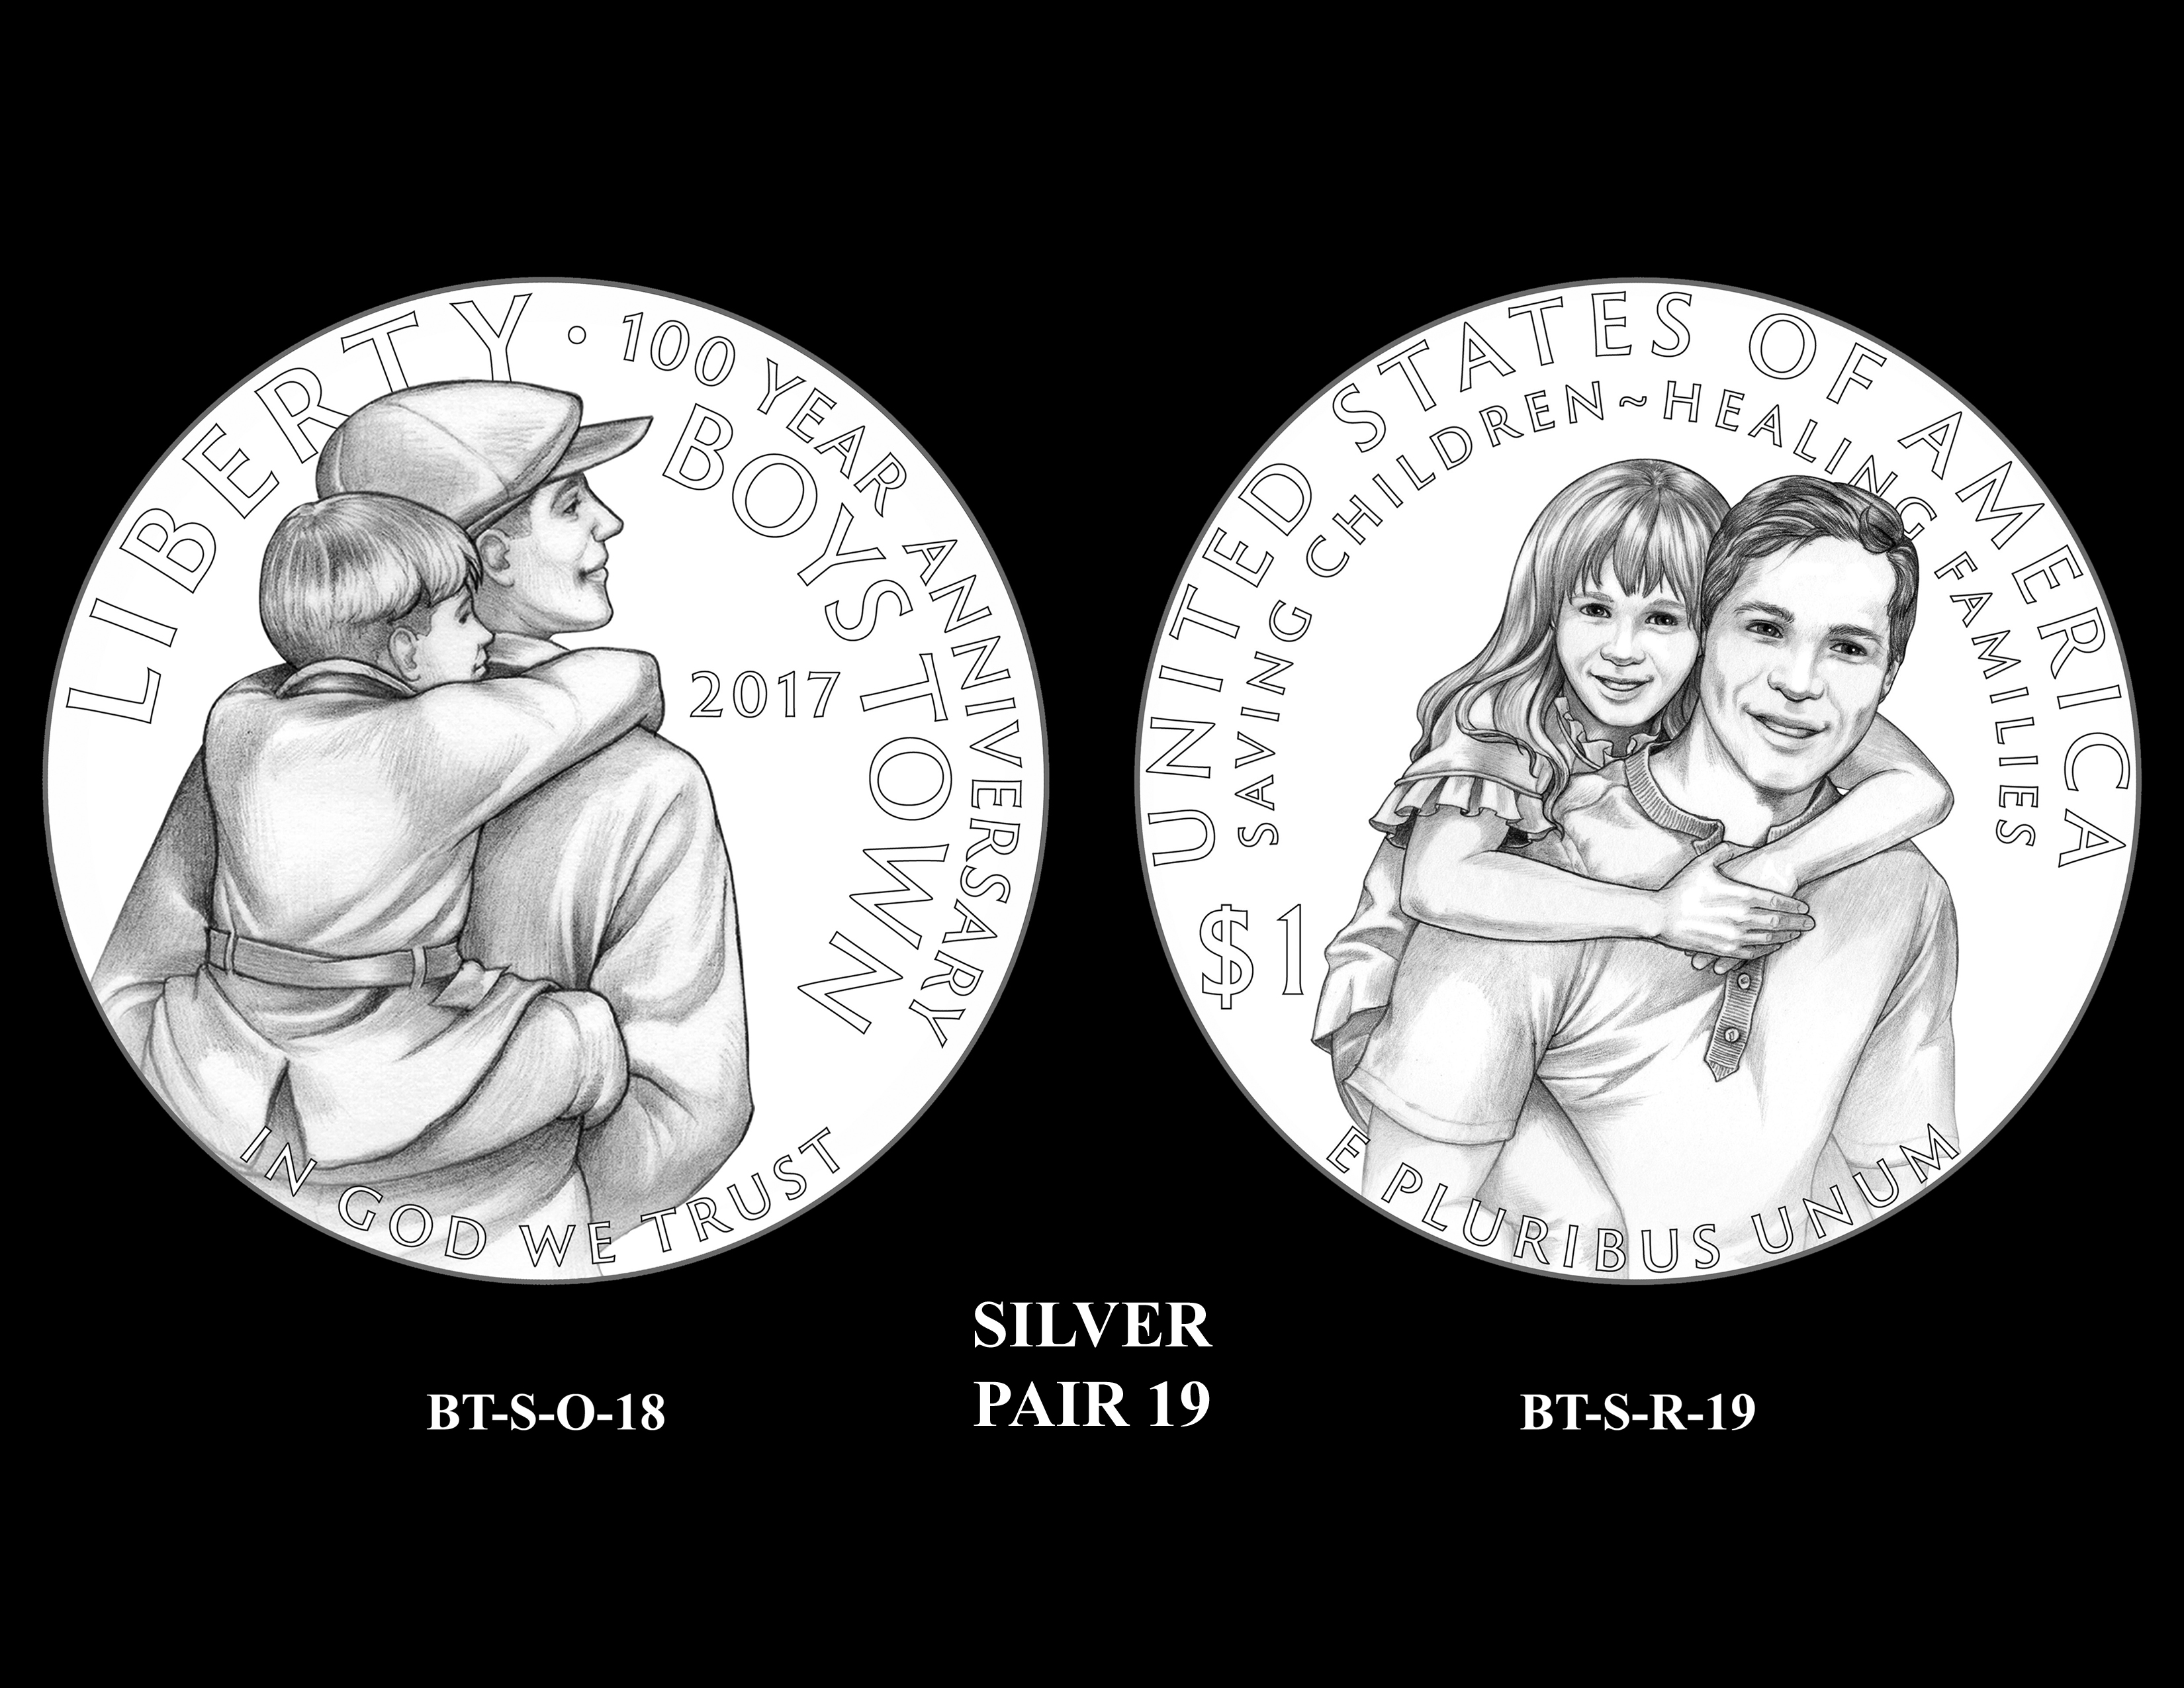 Silver-Pair-19 -- 2017 Boystown Centennial Commemorative Coin  Program